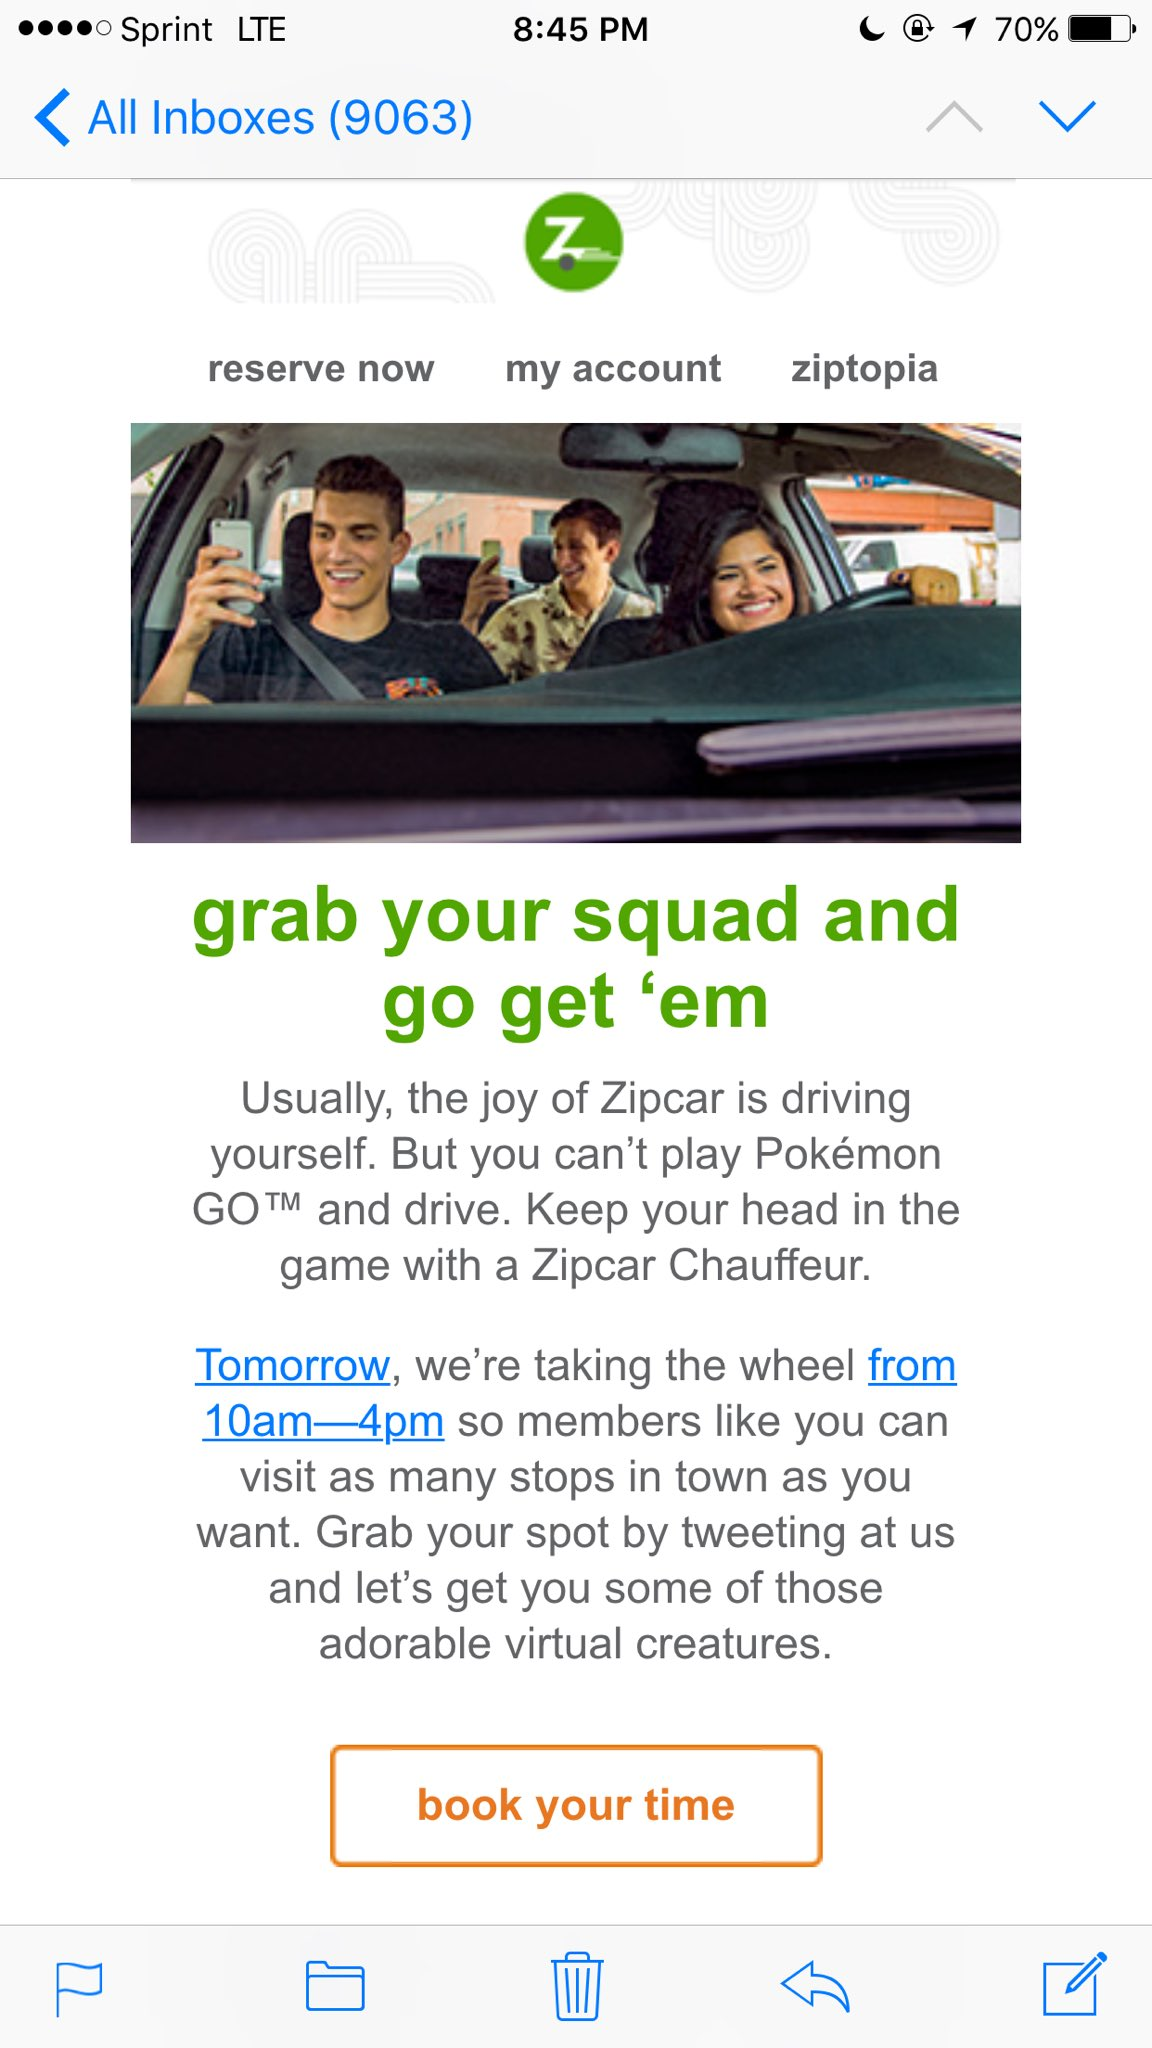 Zipcar Pokemon Go marketing